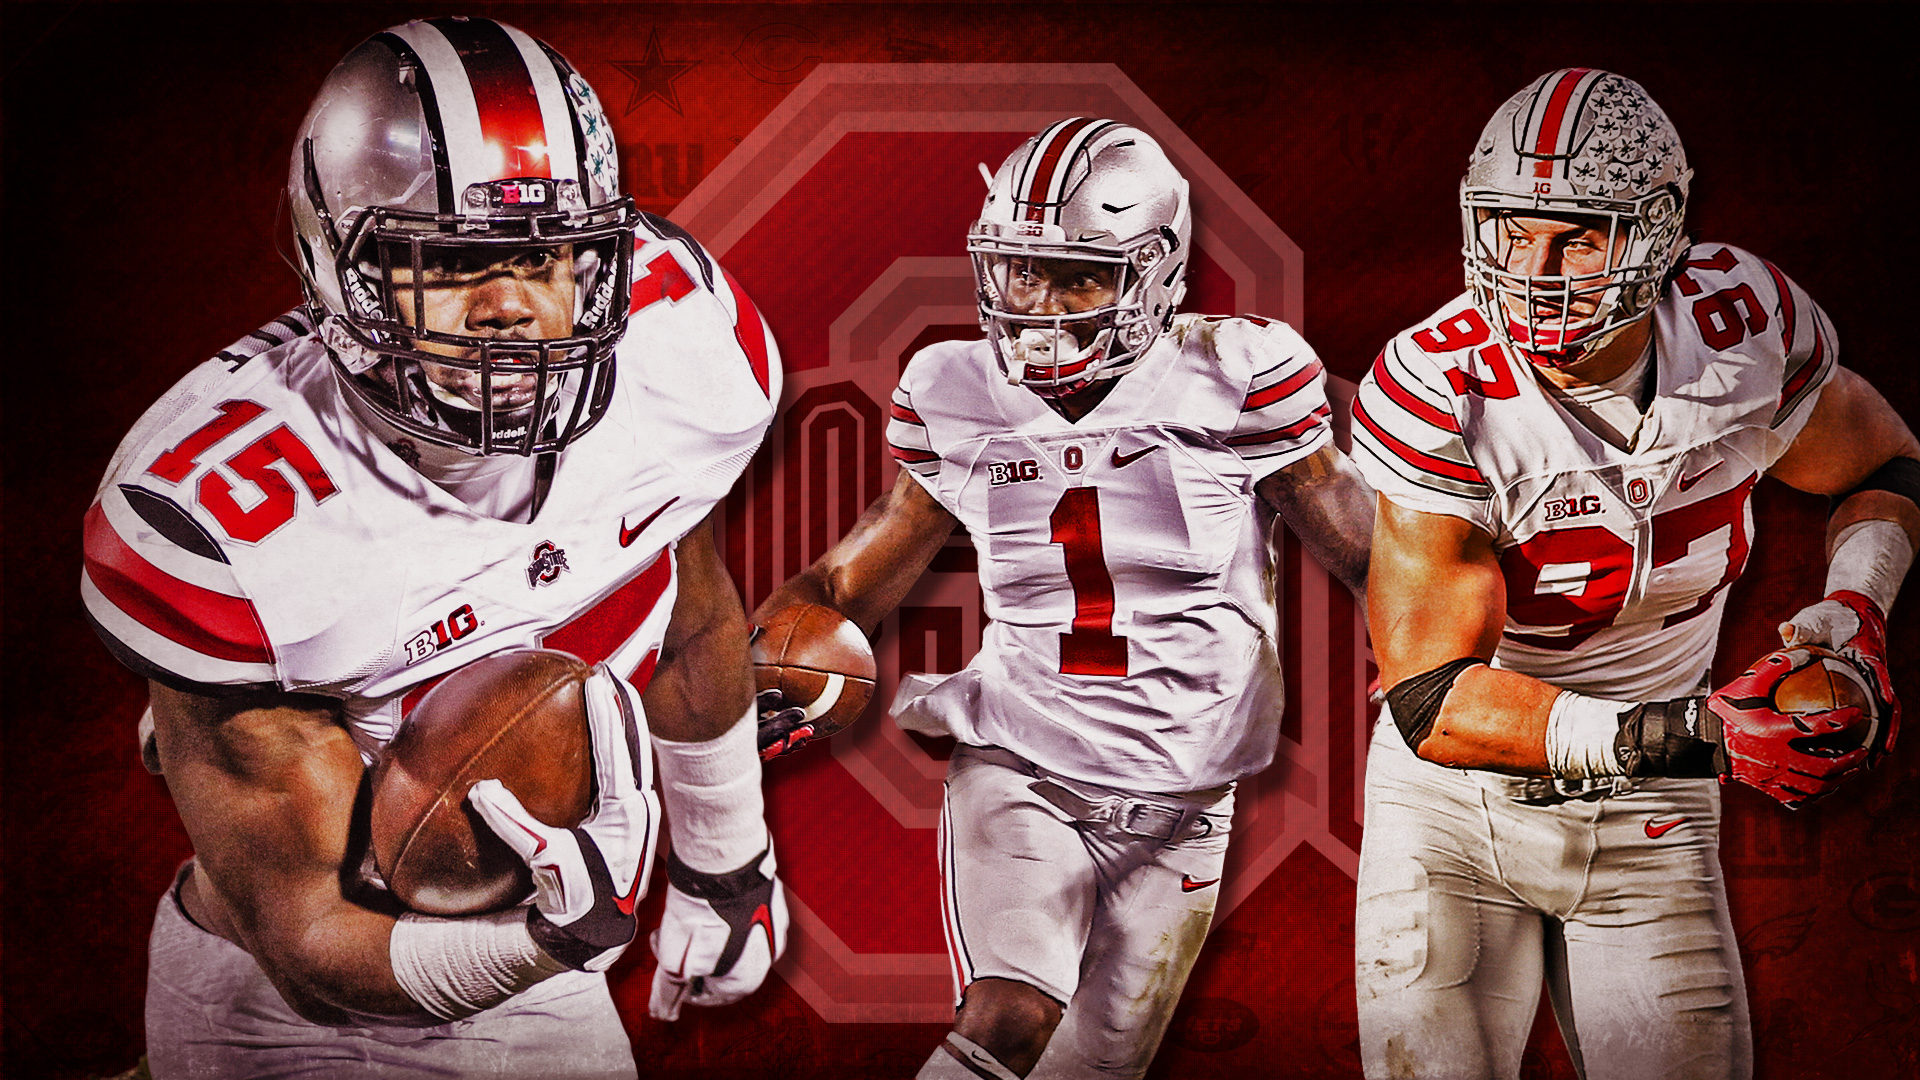 Zeke Elliott Wallpaper Ohio State 467686 Hd Wallpaper